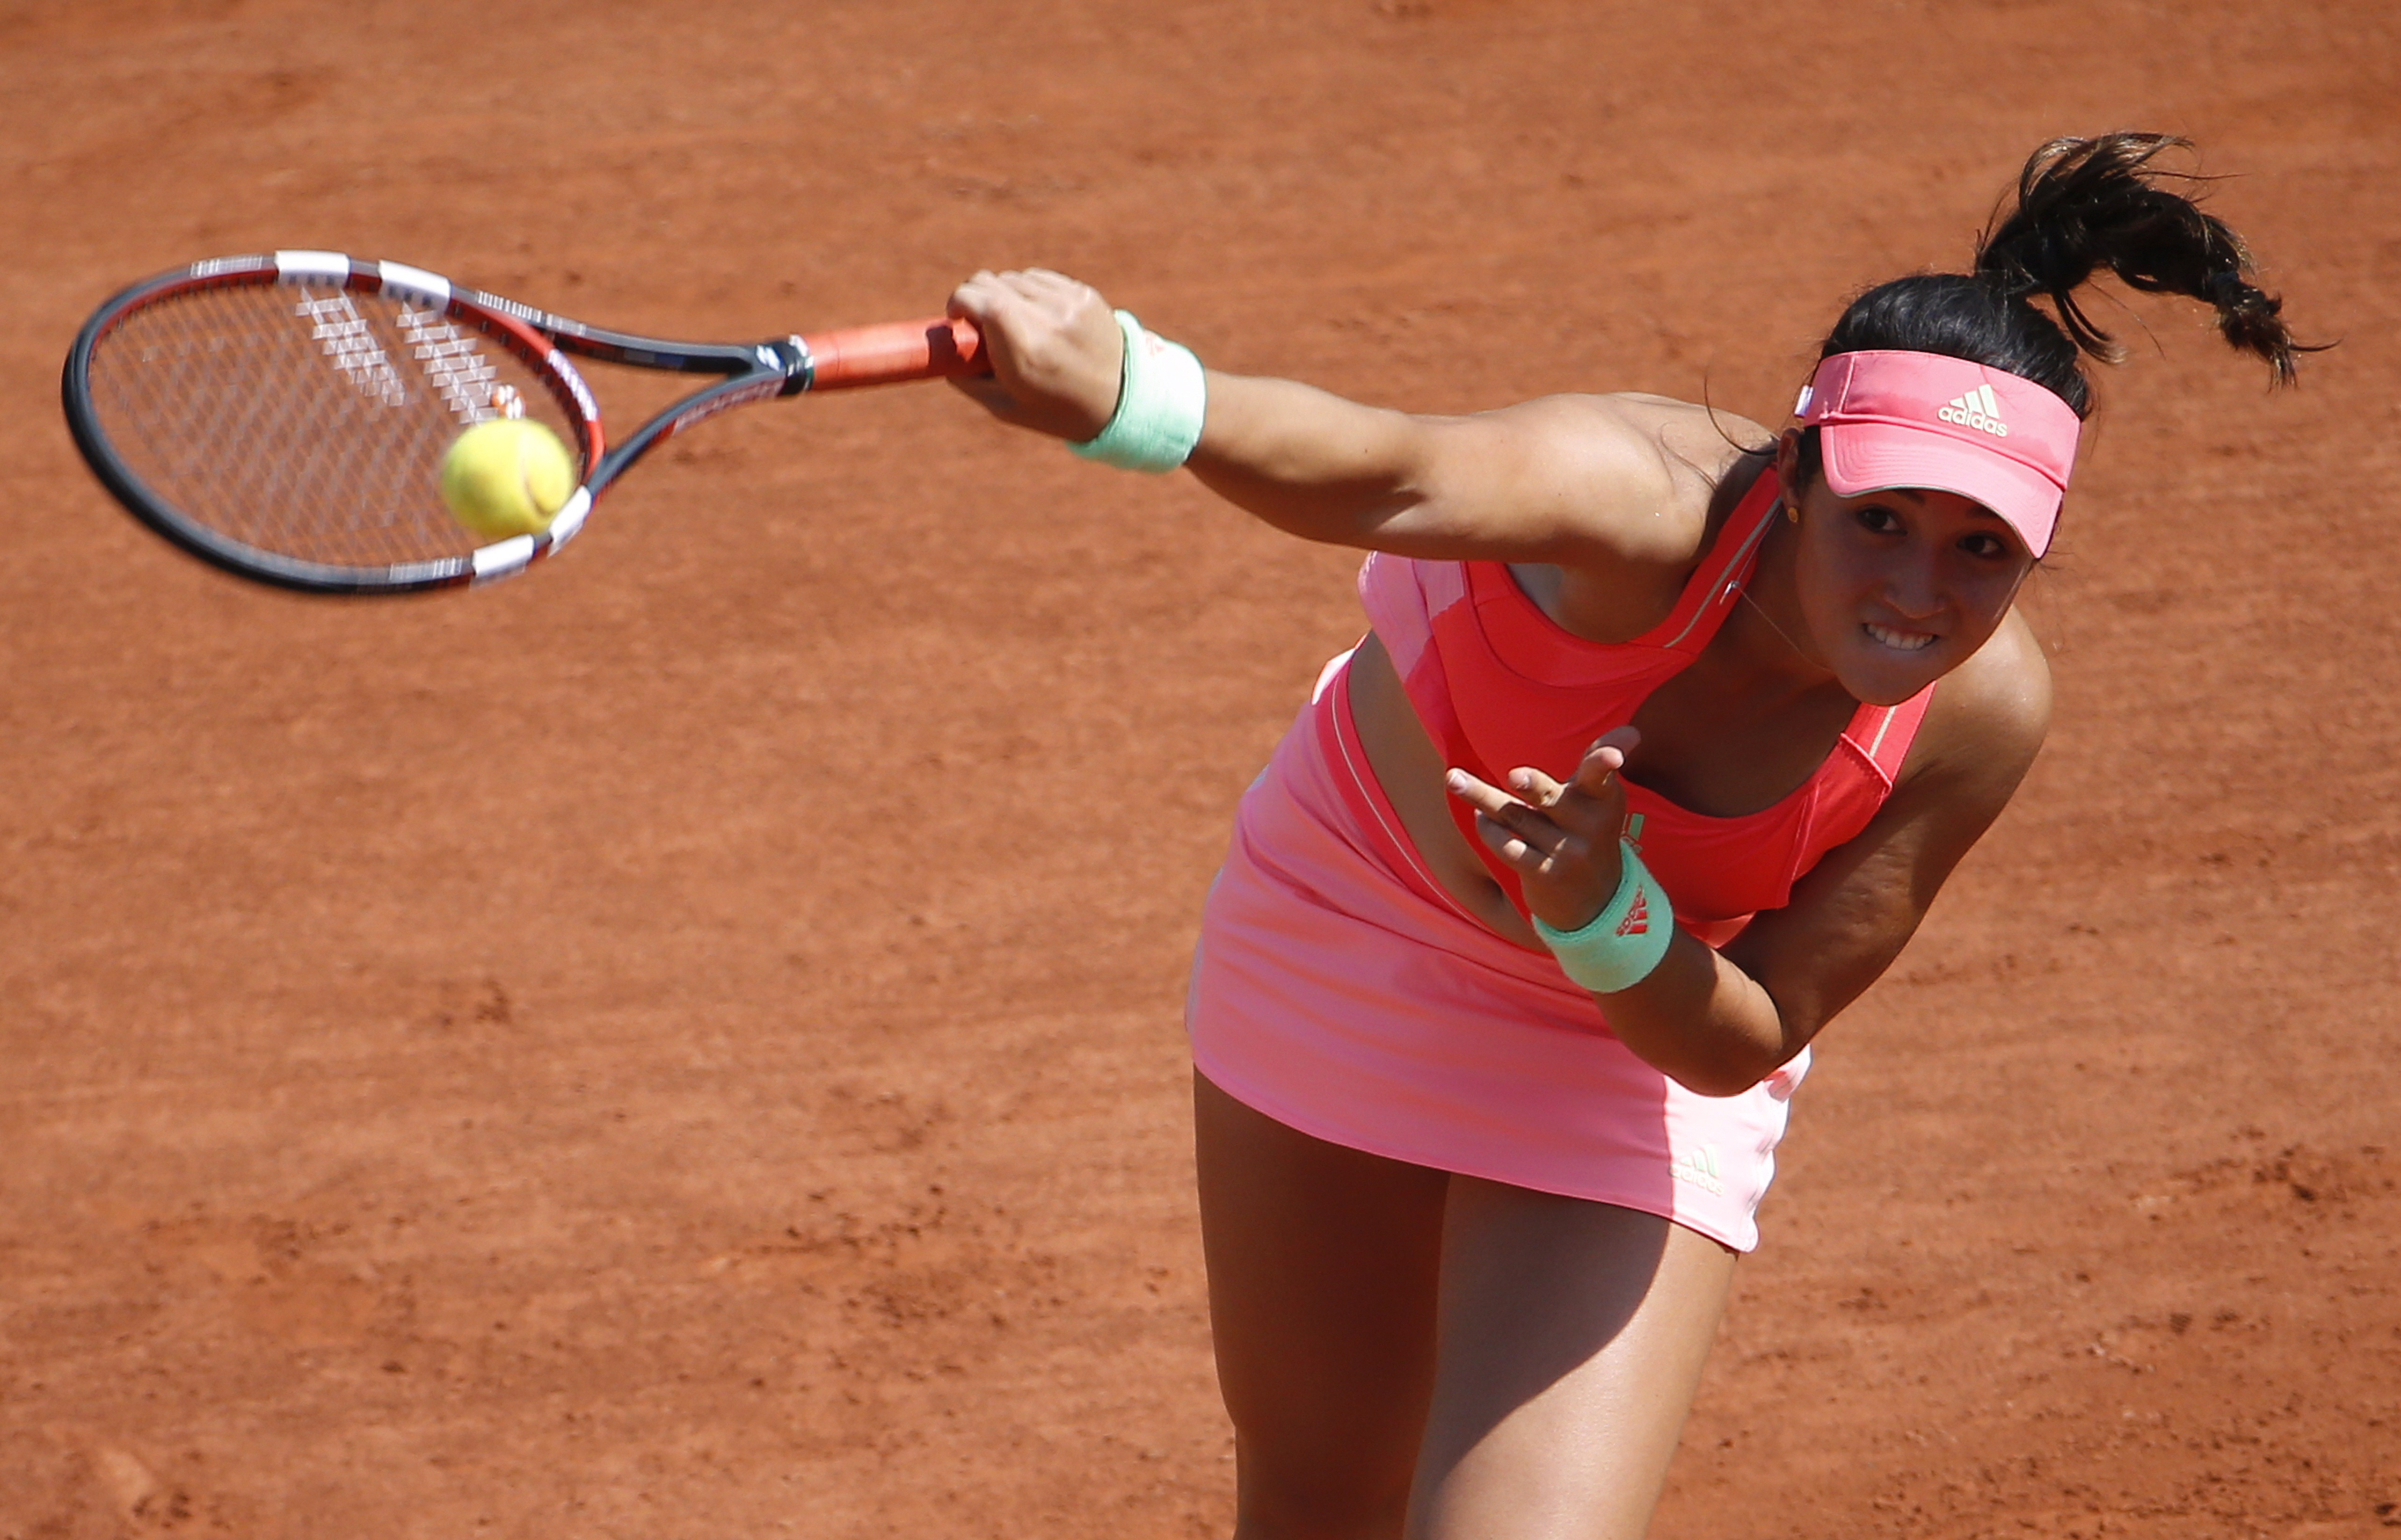 19-year-old American wildcard Louisa Chirico made her Grand Slam debut, losing to No. 9 Ekaterina Makarova 6-4, 6-2.